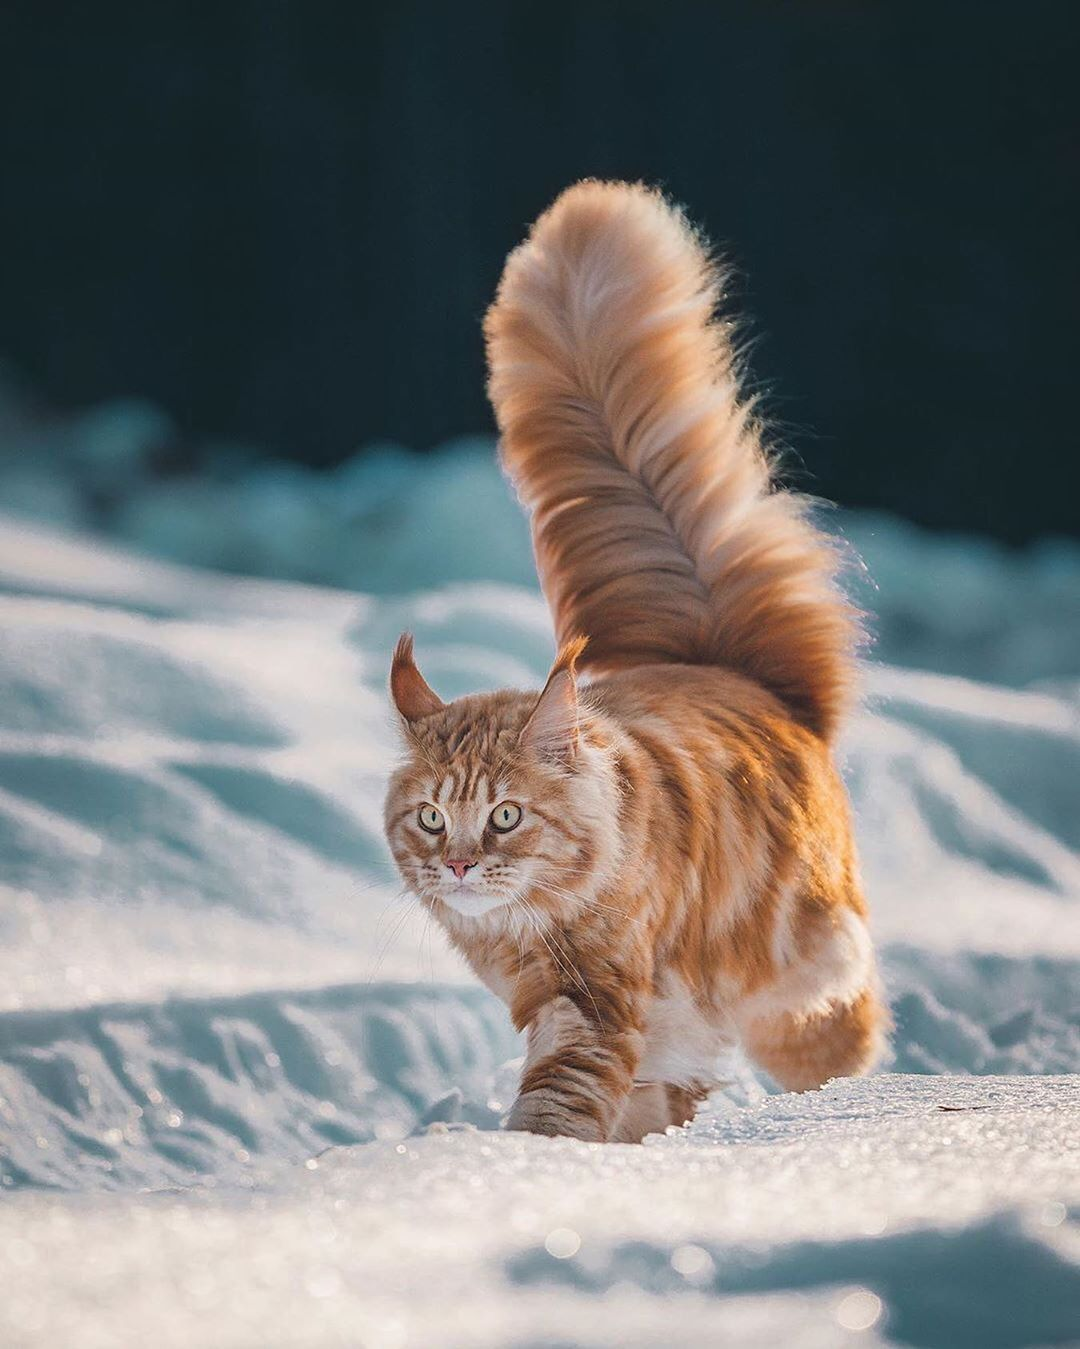 Awesome Travel Nature On Instagram Will This Tail Ever Stop Growing We Can Post Your Photos In Our Account Follo In 2020 Kittens Cutest Cool Cats Cute Animals